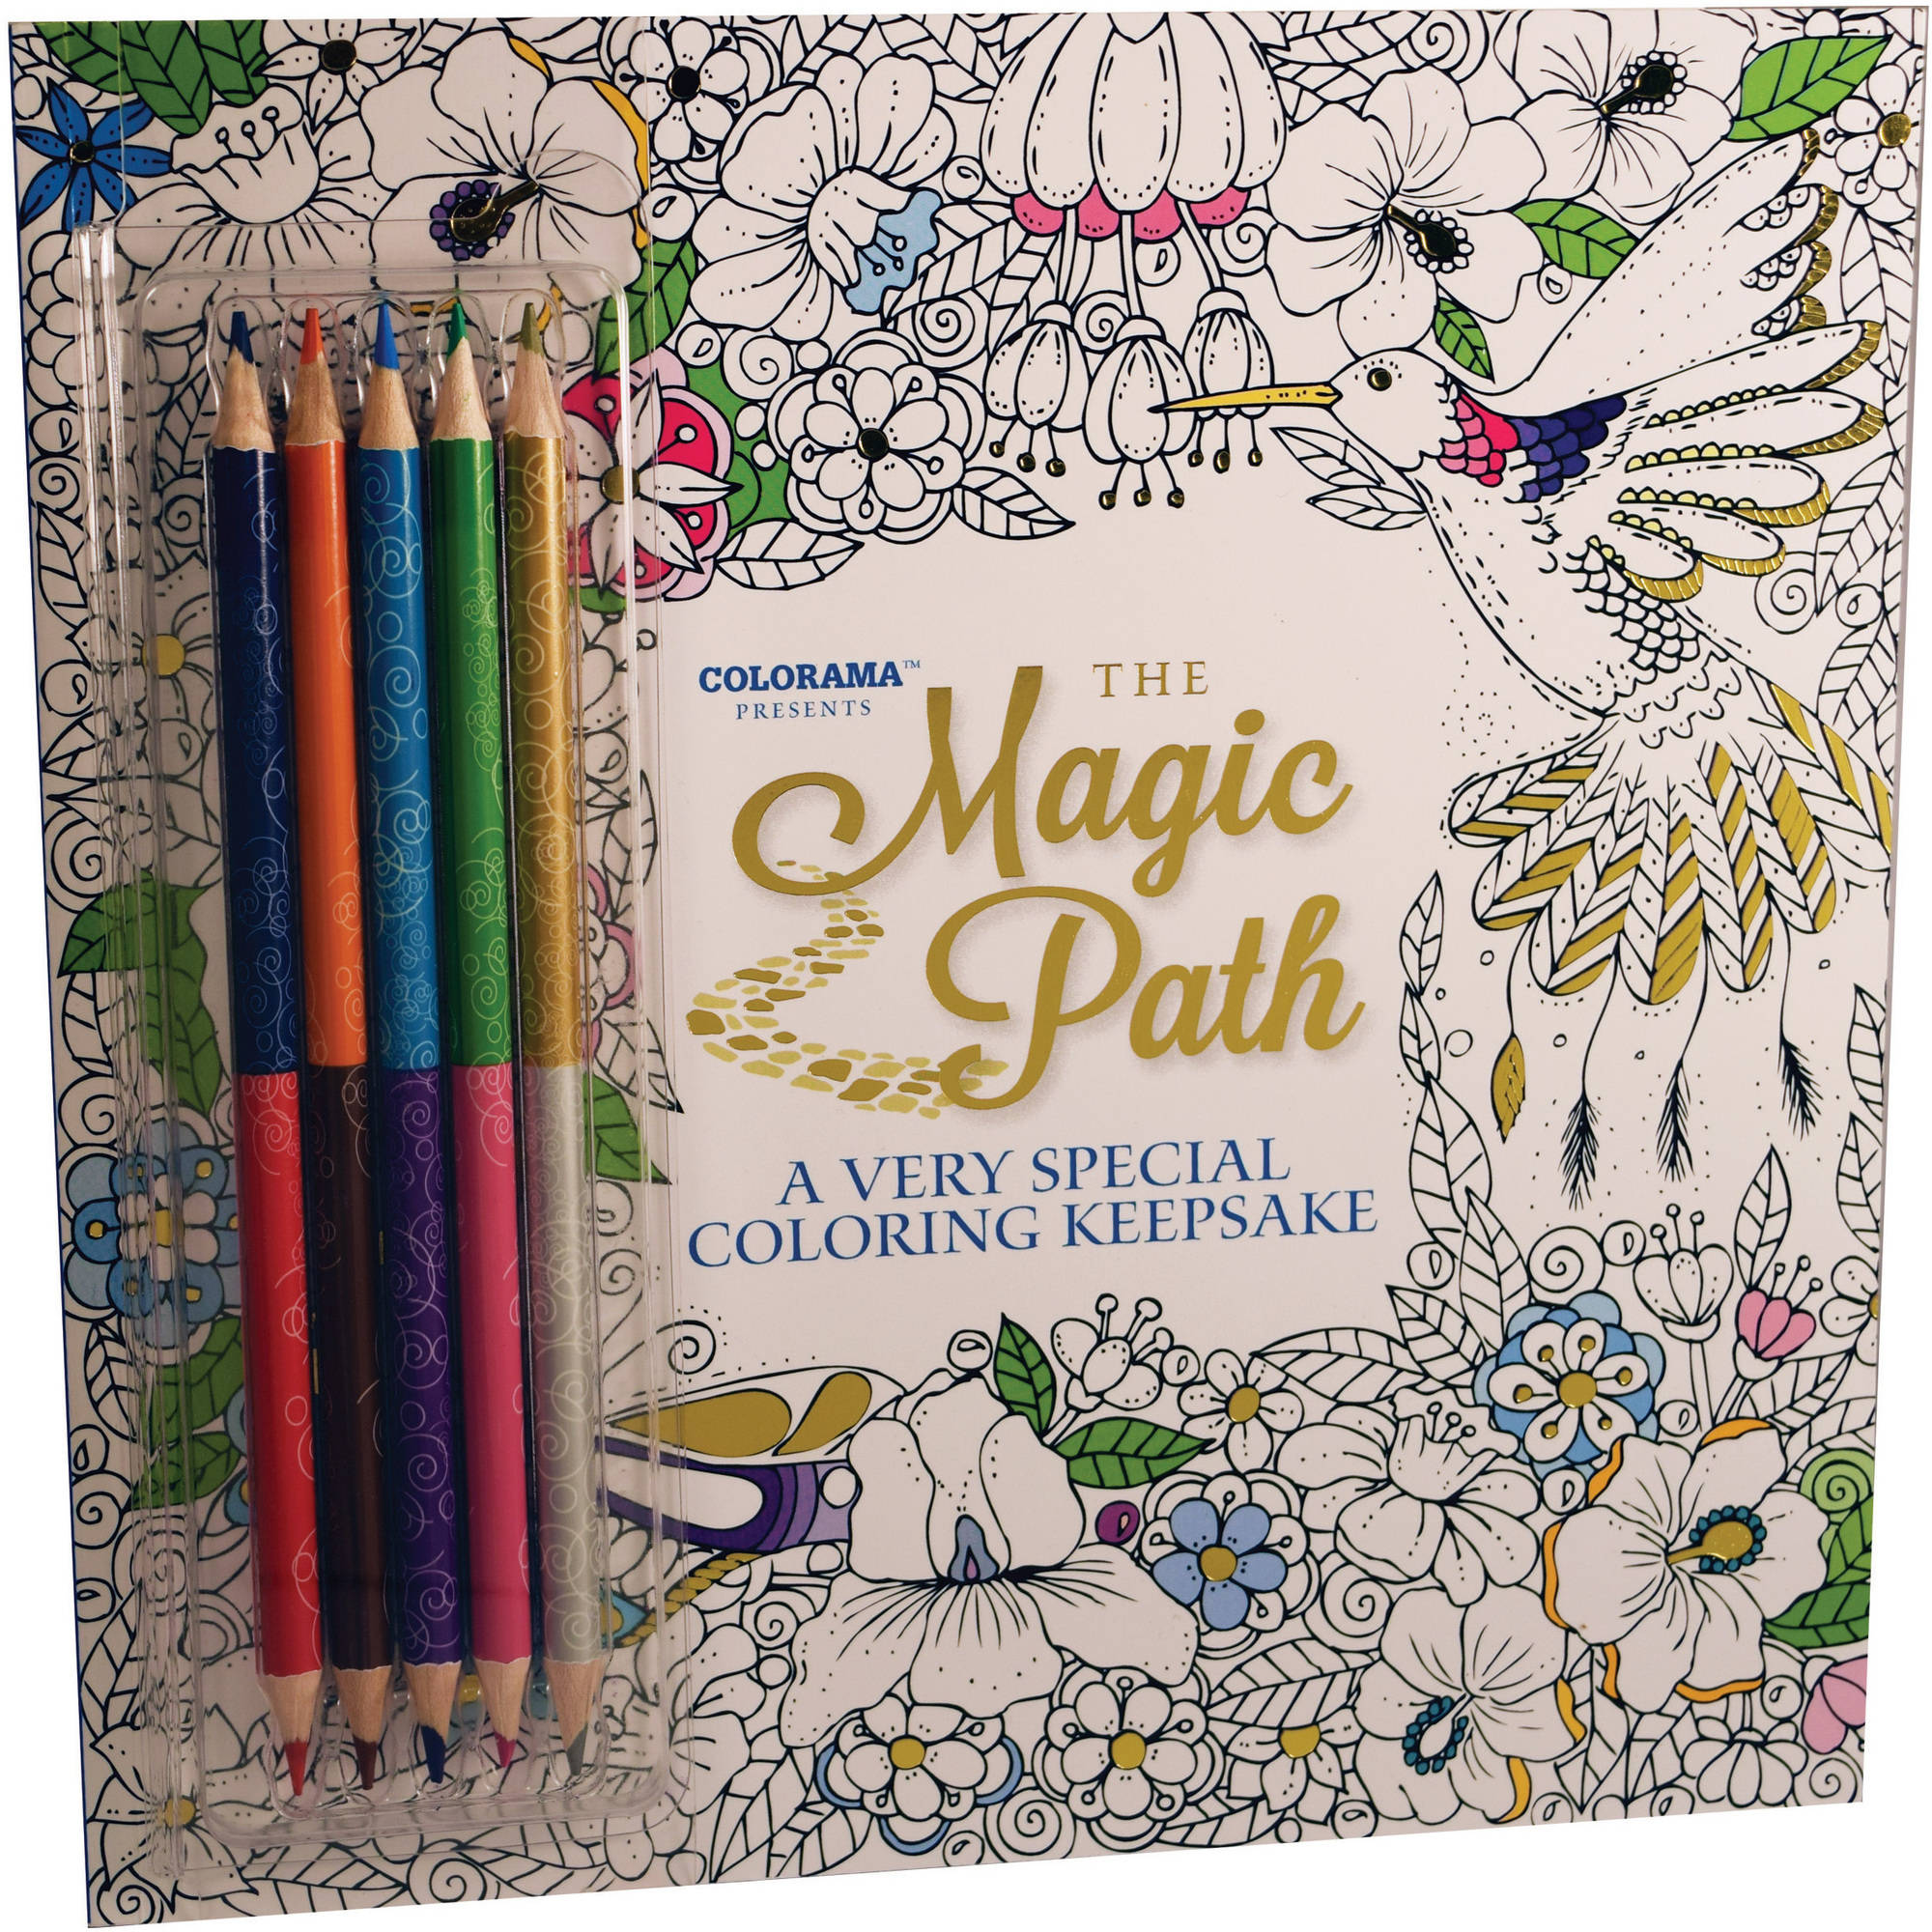 Magic Path Coloring Book!